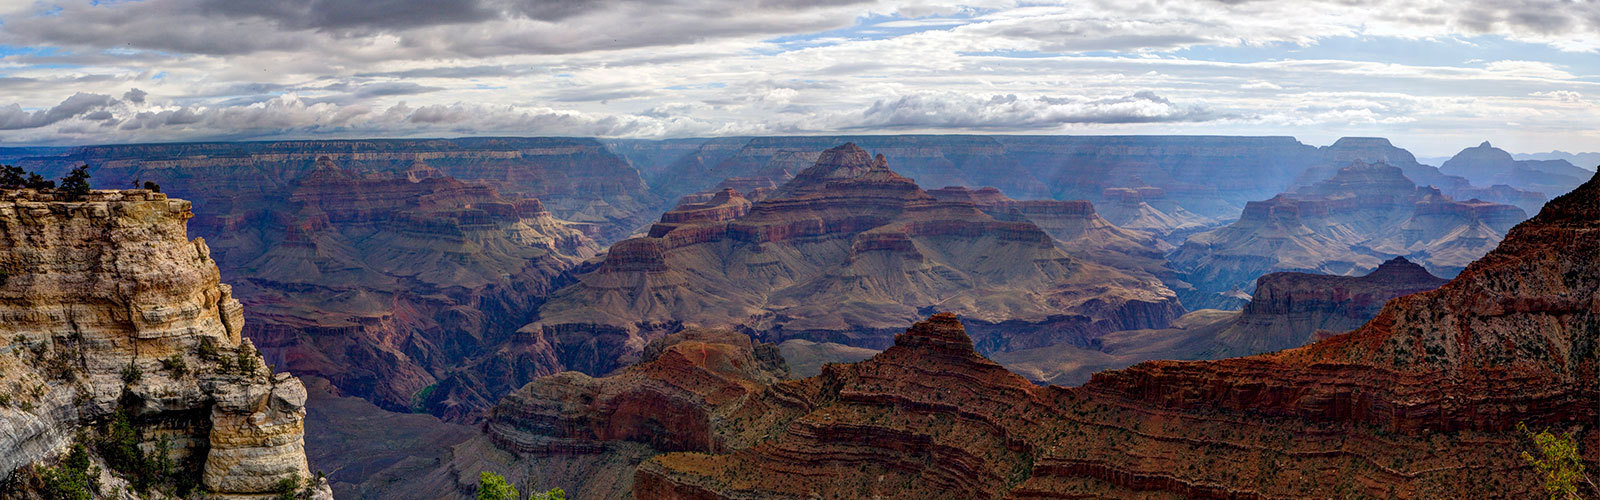 View of sprawling Grand Canyon showing many hues of red rock and against a blue sky.